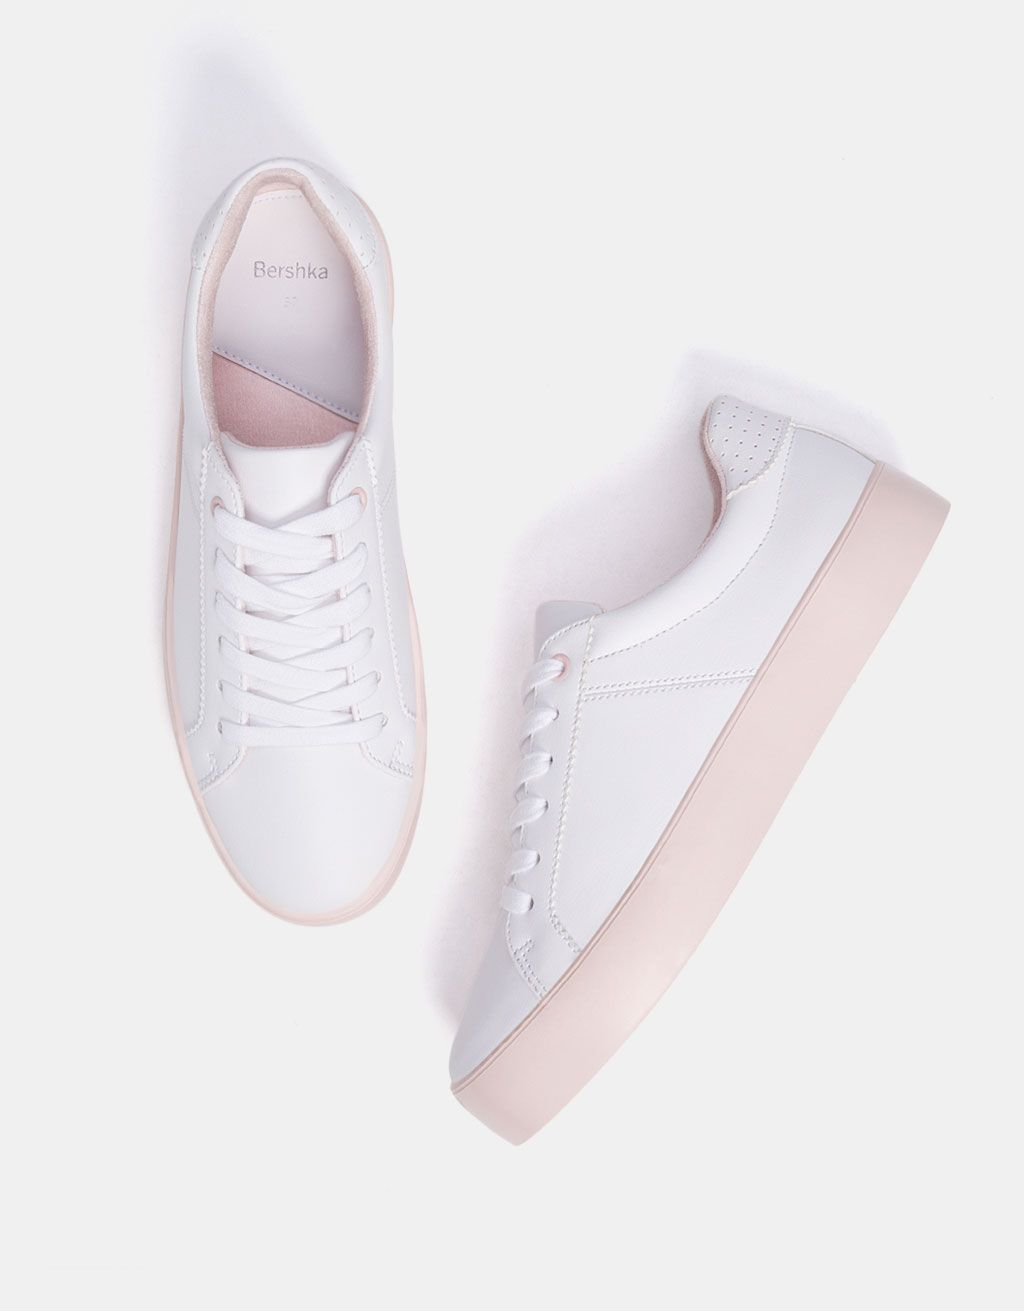 3a1ede8bb6 Platform sneakers with pink soles in 2019